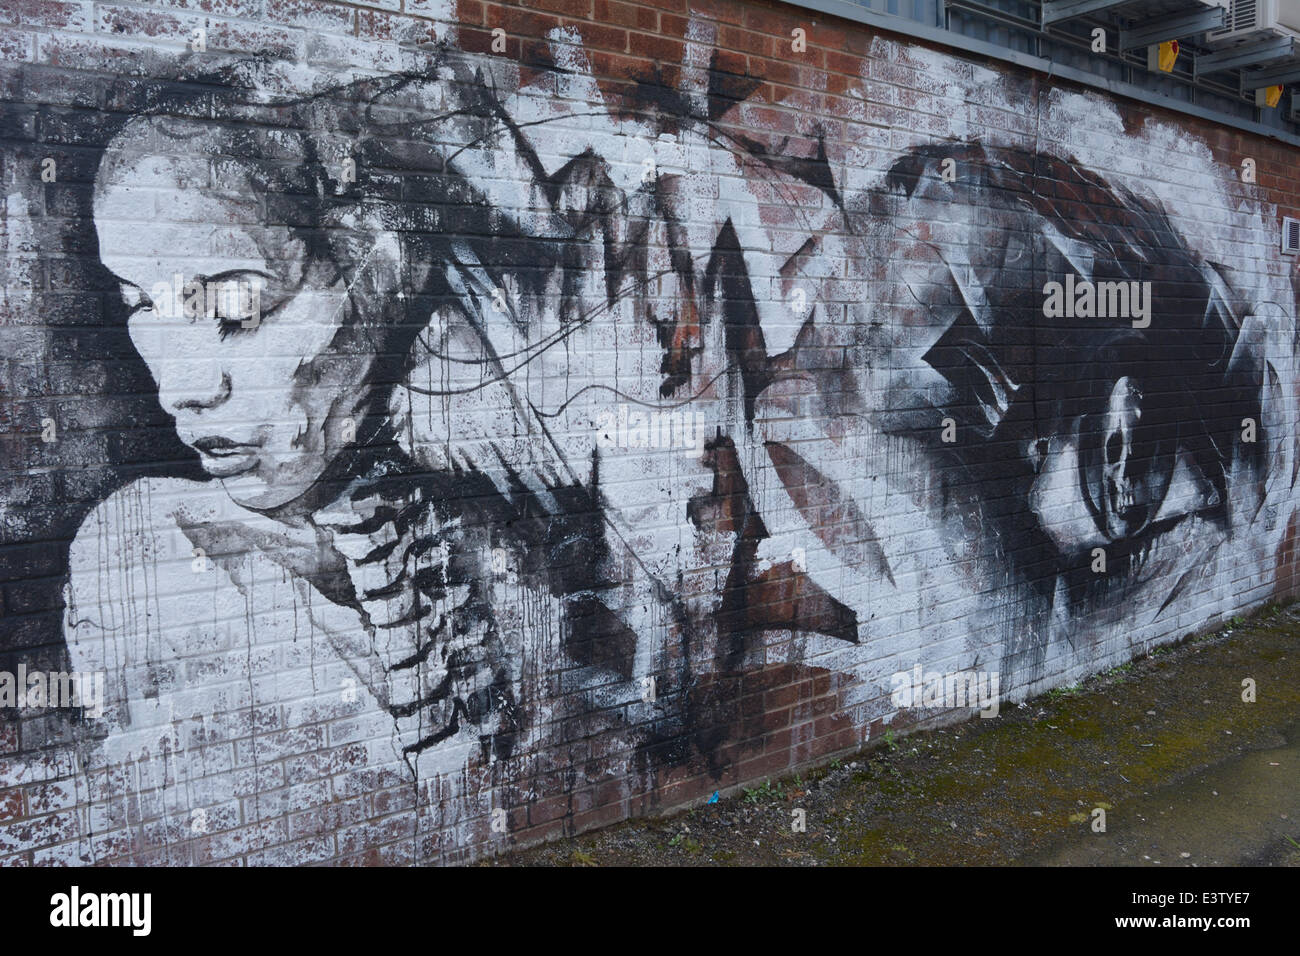 Liverpool, UK. 29th June, 2014. Black and White artwork by much respected local artist Danny, known as DOC. Credit: - Stock Image